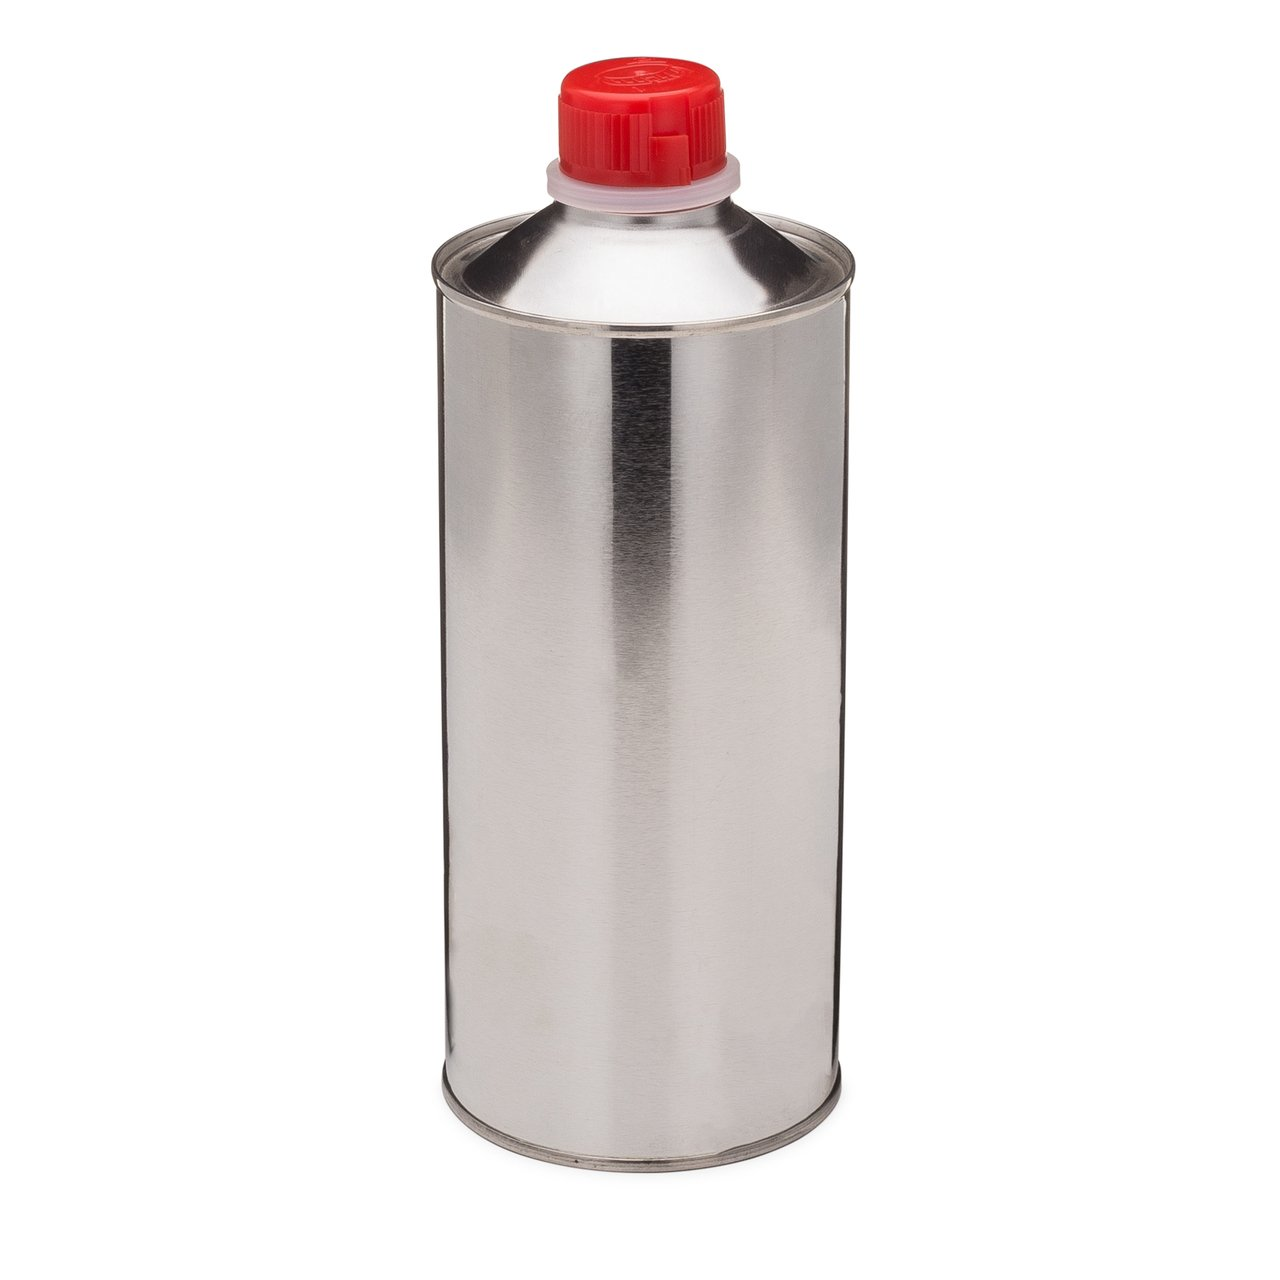 Tin-plated Cone-Top Steel Metal Can with Child-Resistant REL Cap, (32 Oz Capacity)